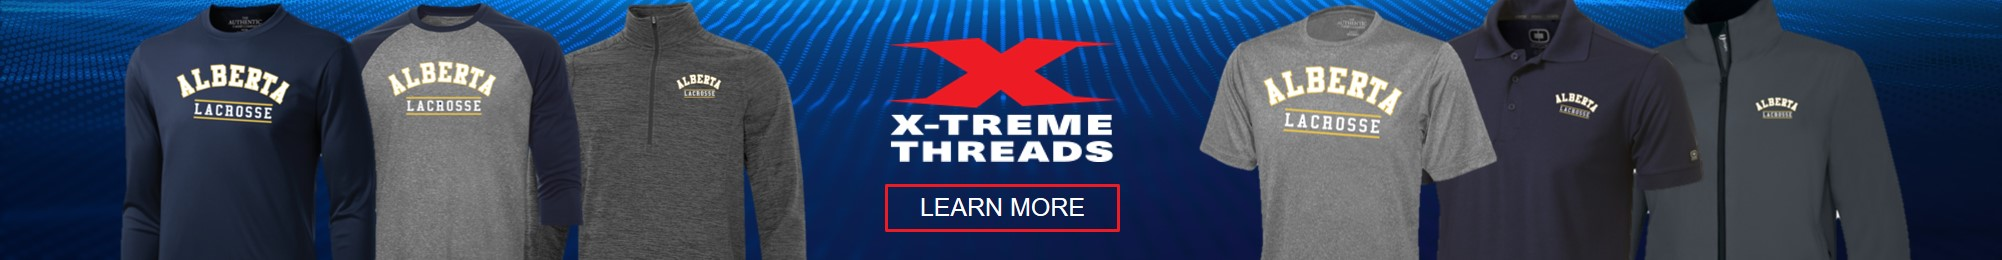 X-Treme Threads